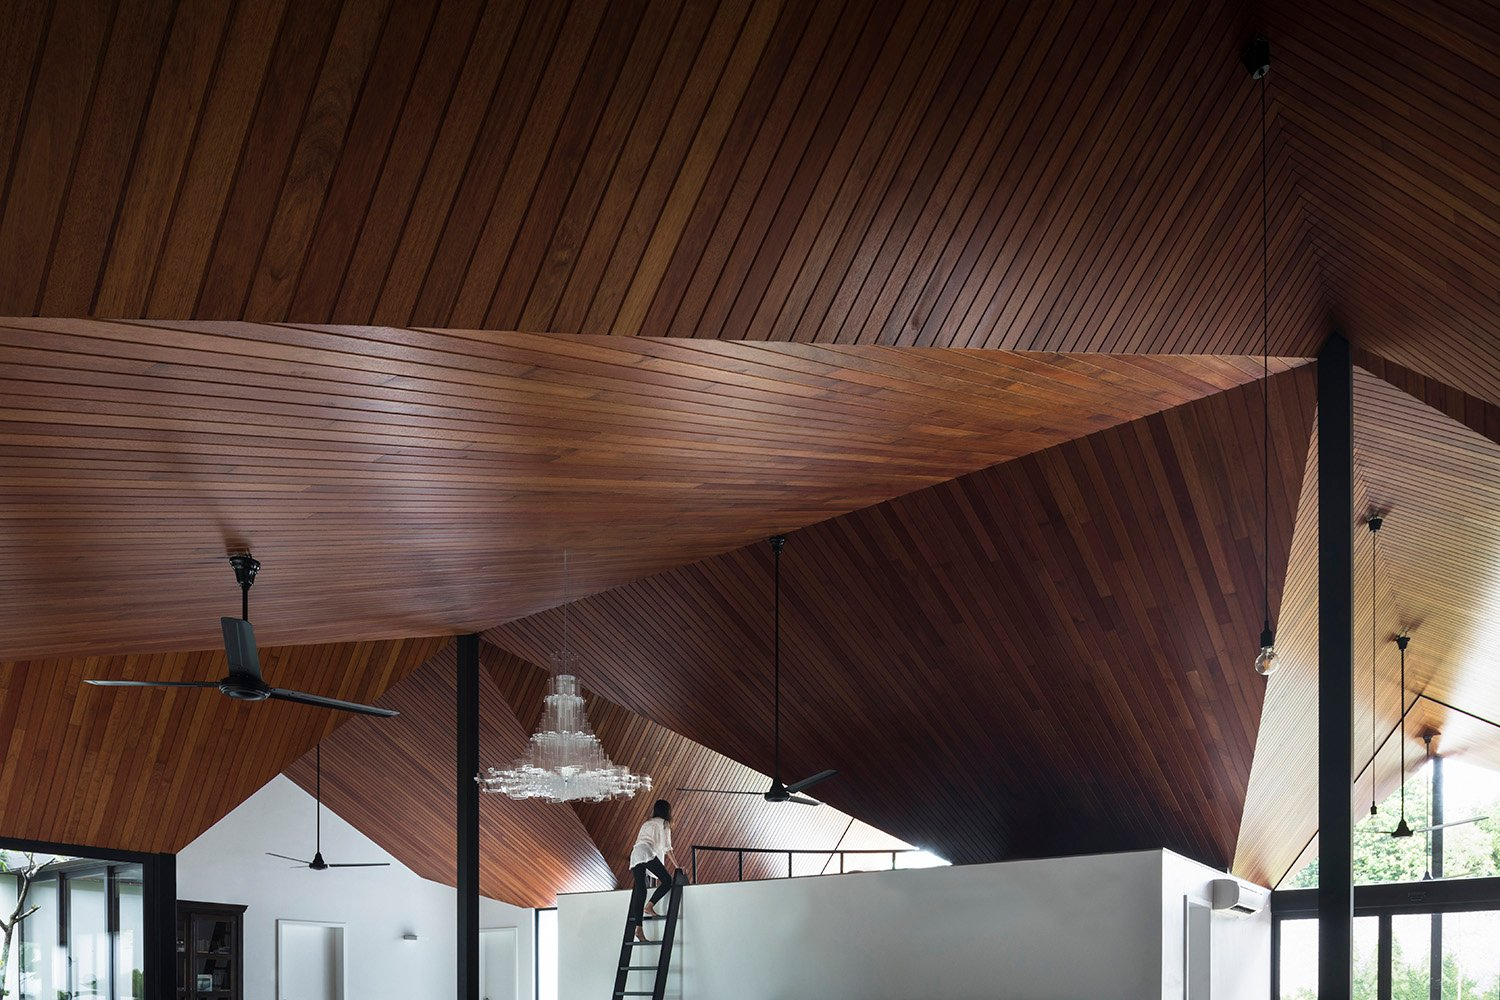 Undulating timber roofs form the main architectural element of the space. Fabian Ong